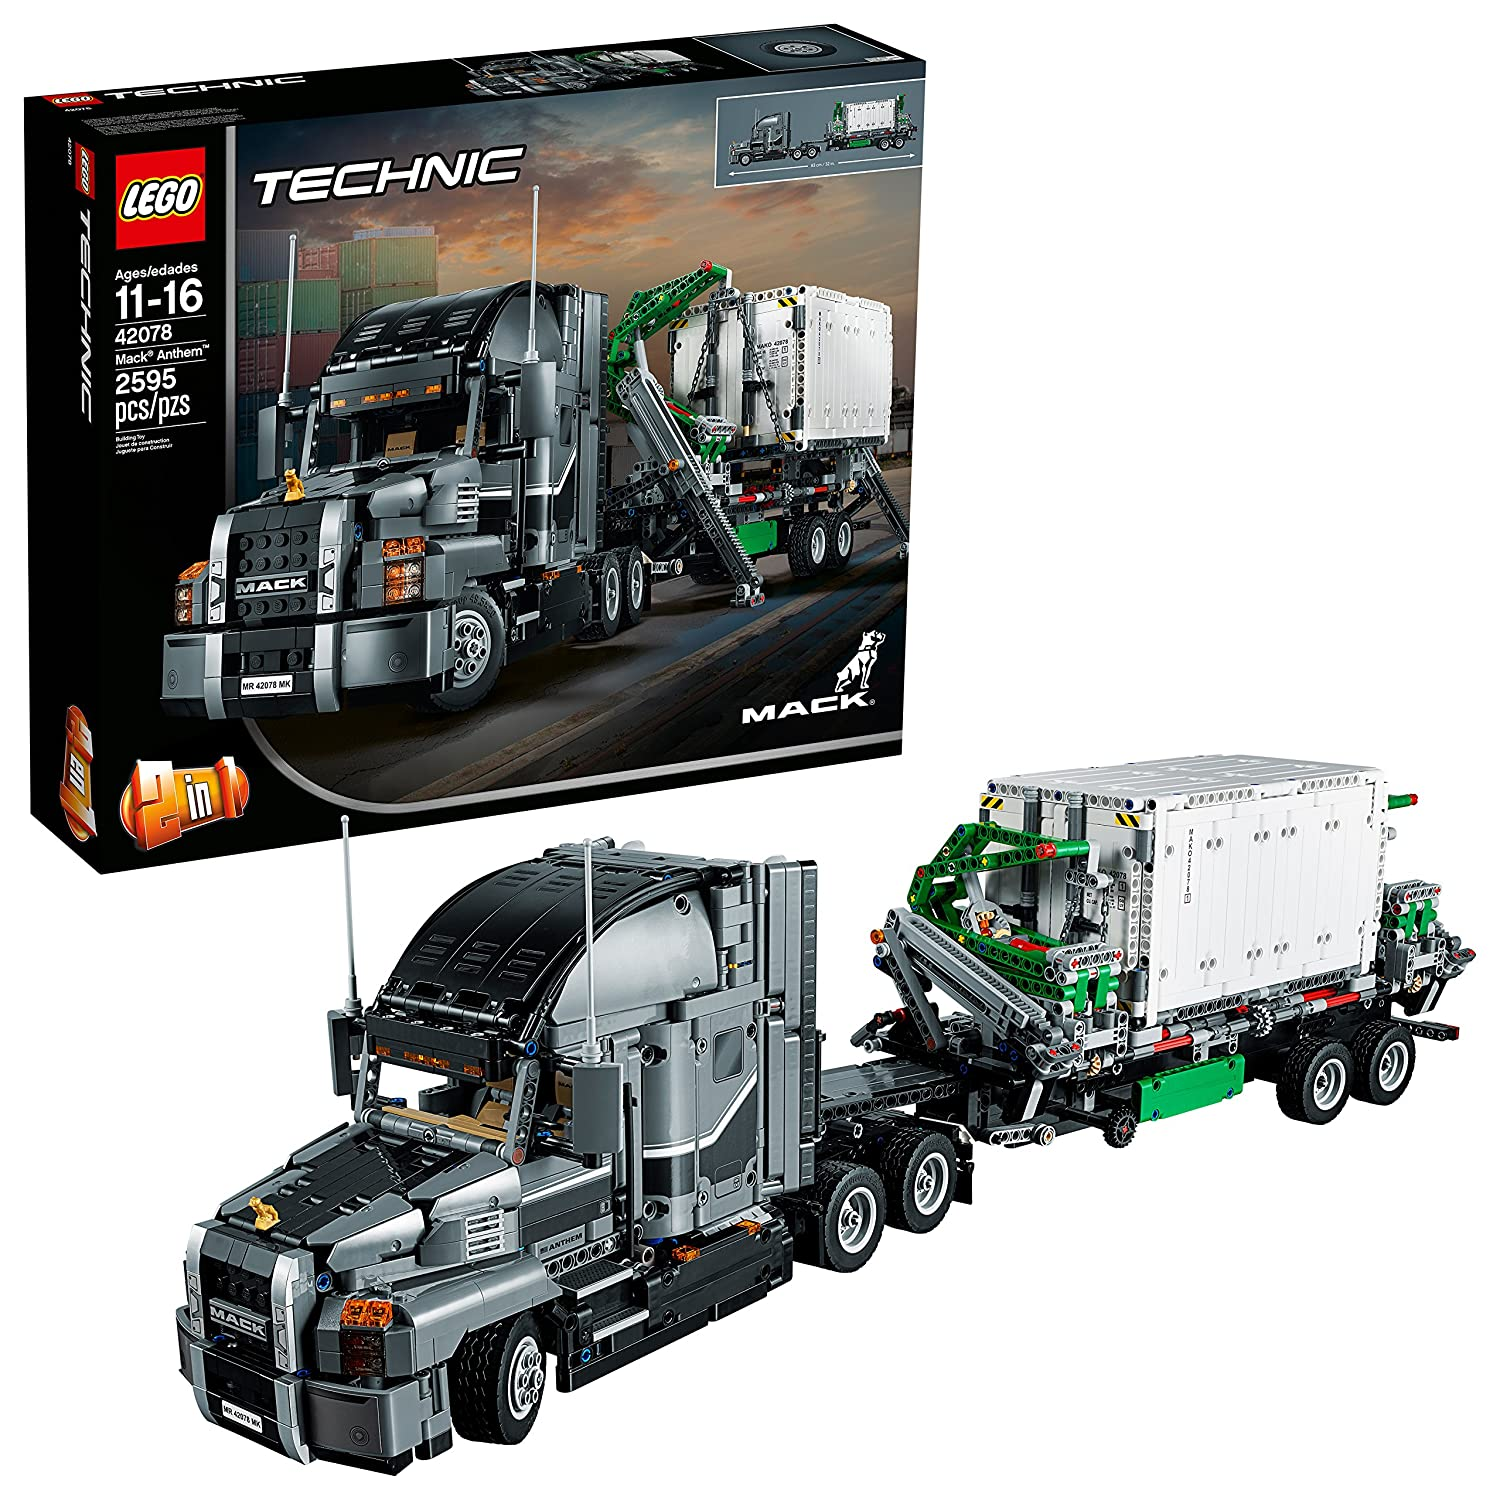 Amazon.com: LEGO Technic Mack Anthem 42078 Semi Truck Building Kit and  Engineering Toy for Kids and Teenagers, Top Gifts for Boys (2595 Piece):  Toys & Games